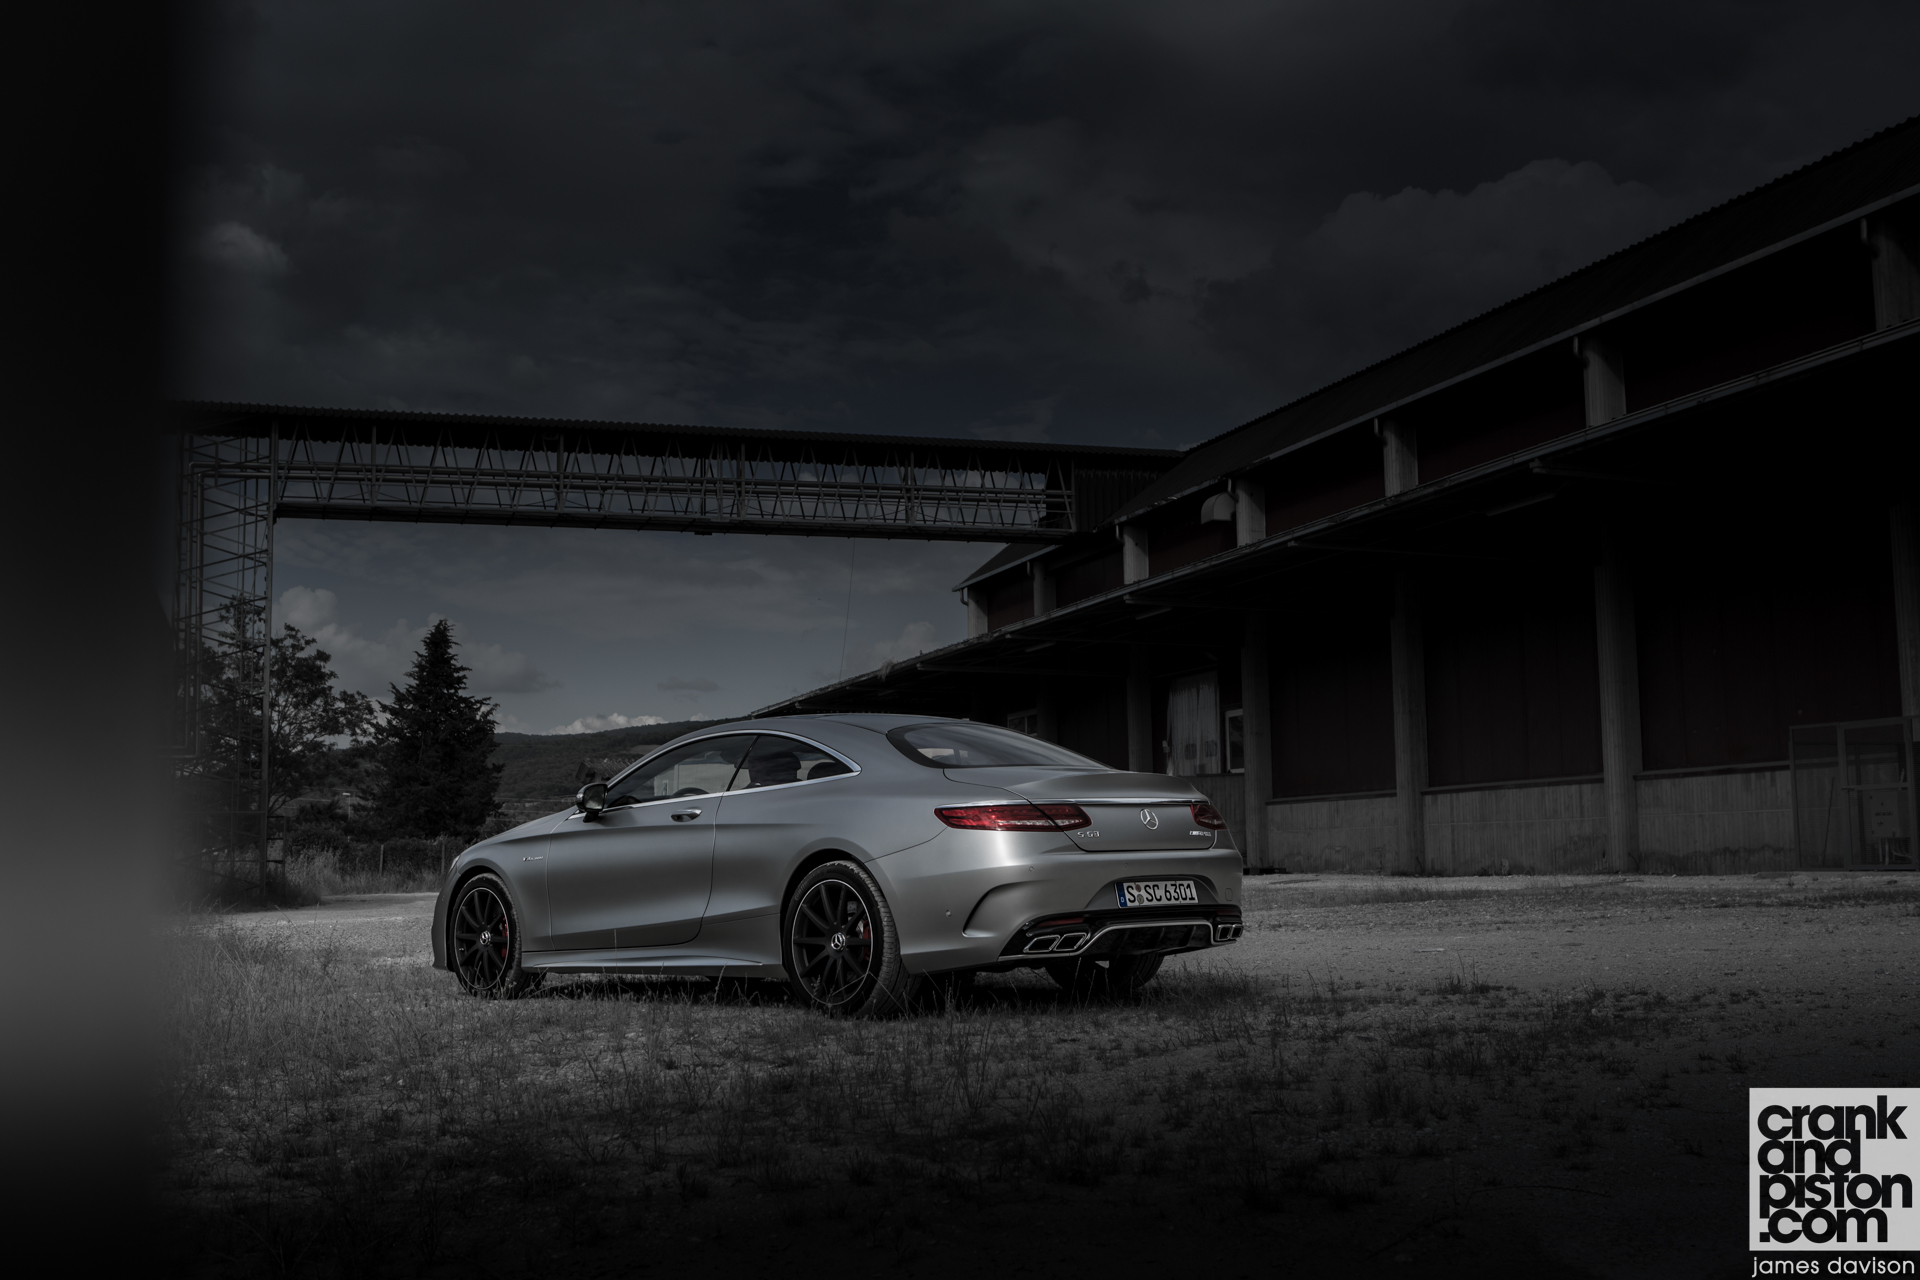 S 63 Amg Wallpaper: HIGH RESOLUTION Downloadable Desktop Wallpapers